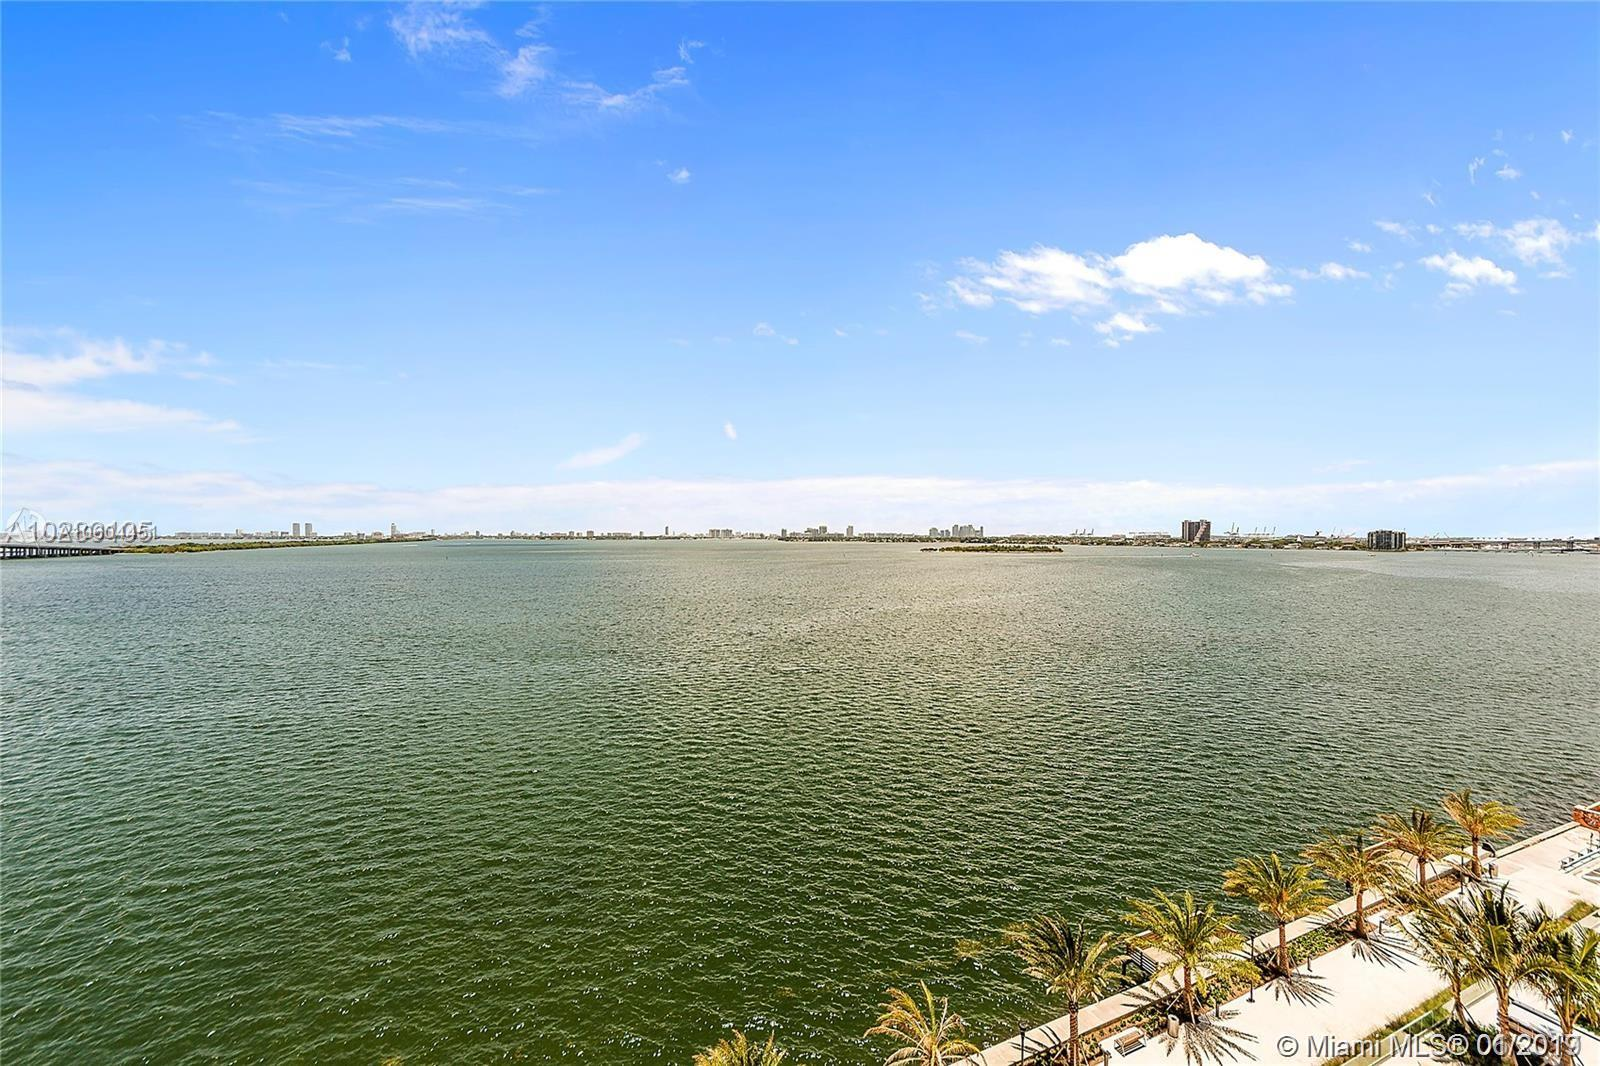 2900 NE 7 Ave # 803, Miami, Florida 33137, 2 Bedrooms Bedrooms, 1 Room Rooms,3 BathroomsBathrooms,Residential,For Sale,2900 NE 7 Ave # 803,A10604451